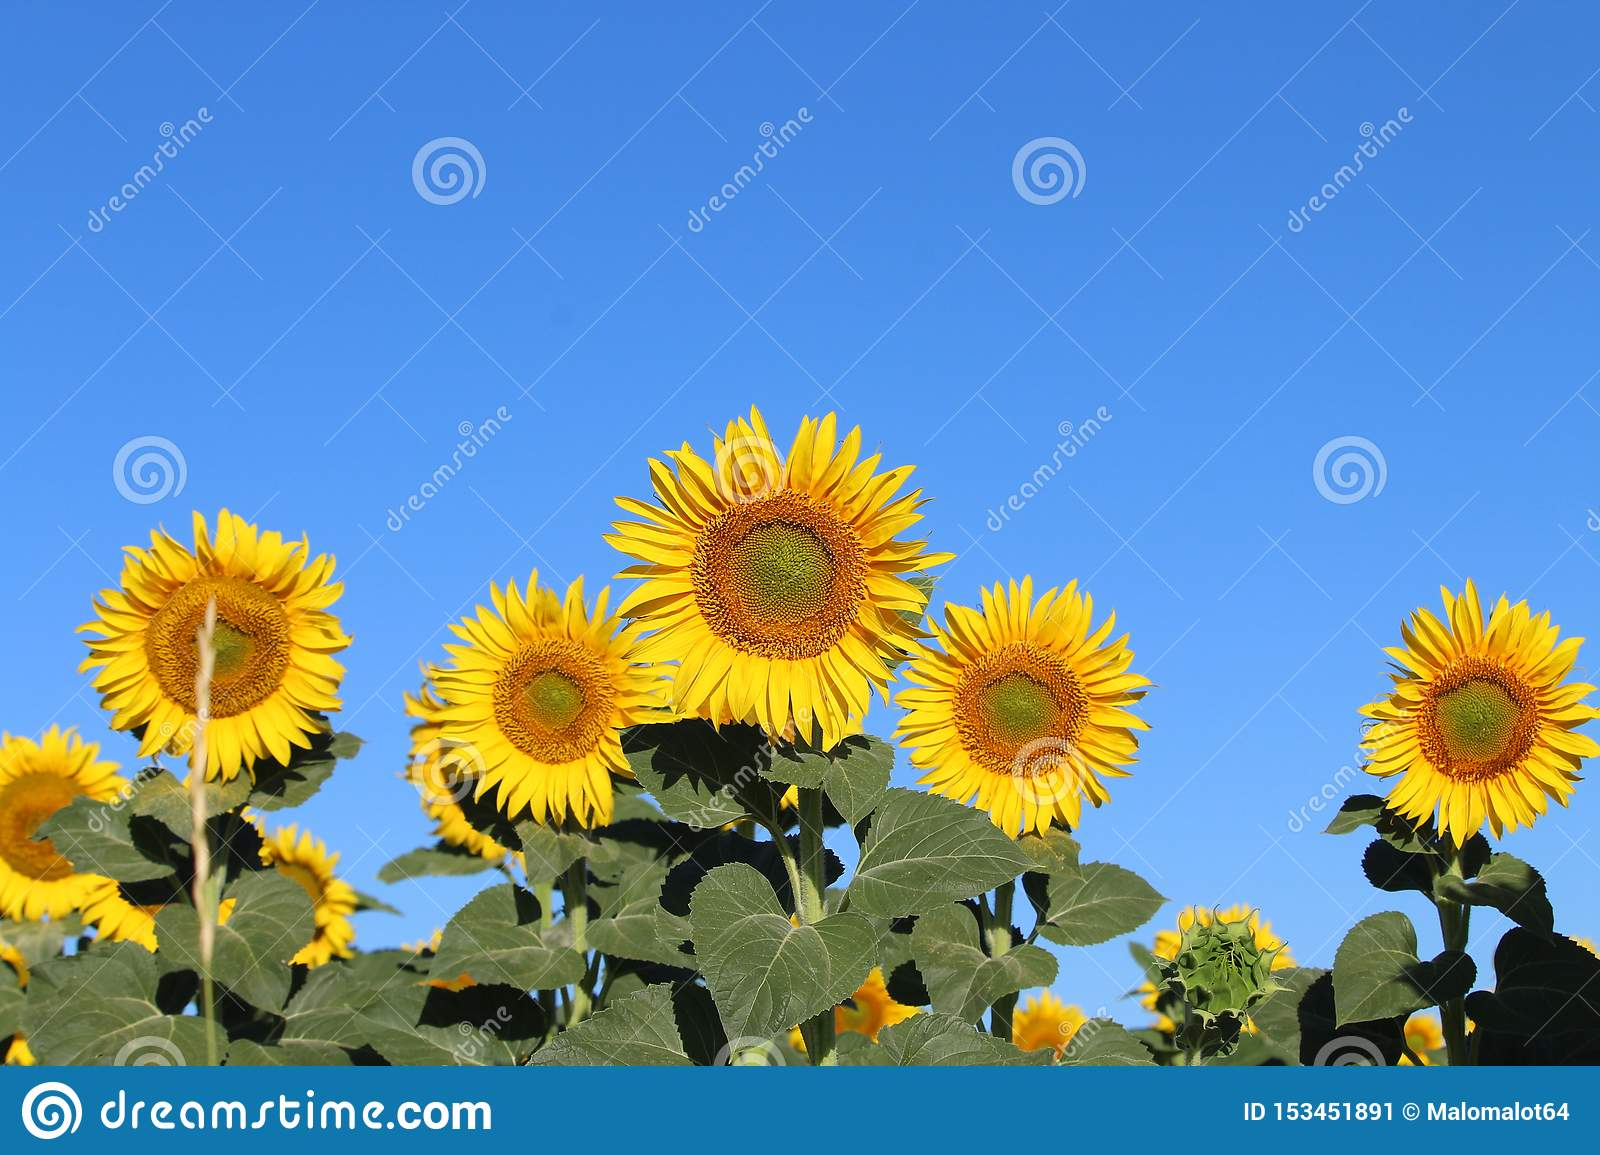 Beautiful picture of sunflowers and soaking up the sun in the field